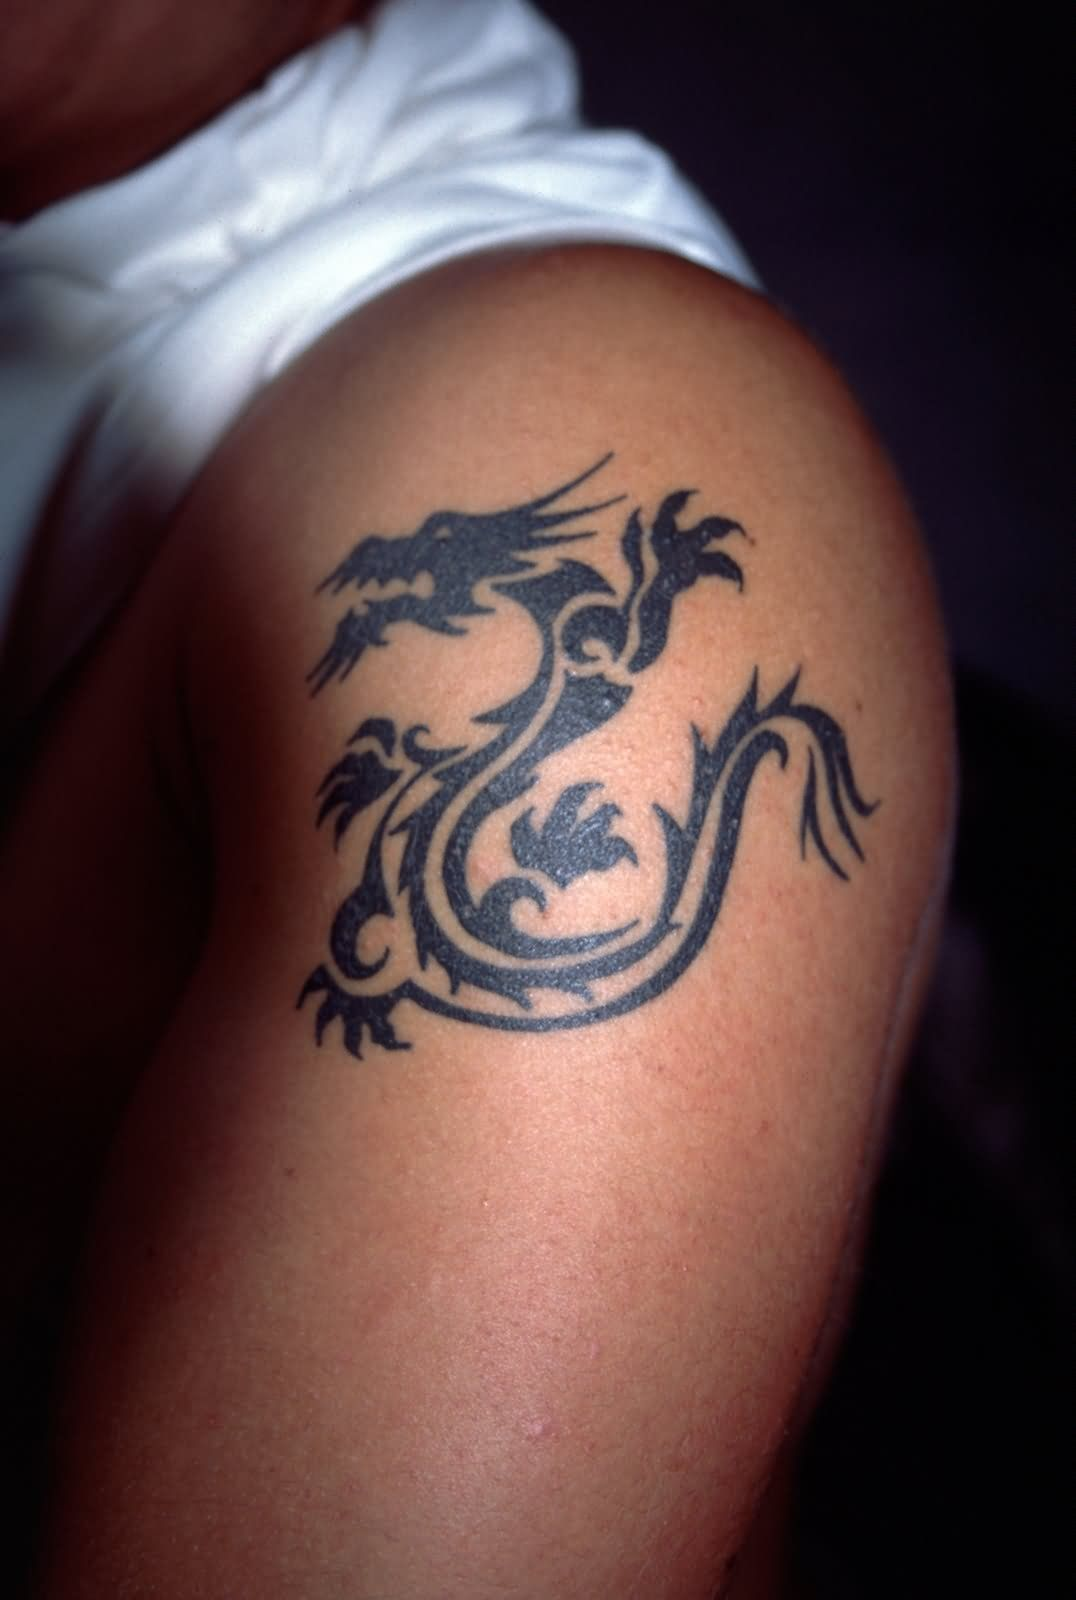 Considering This One On My Back Dragon Tattoo Shoulder Shoulder Tattoos For Women Dragon Tattoo Designs